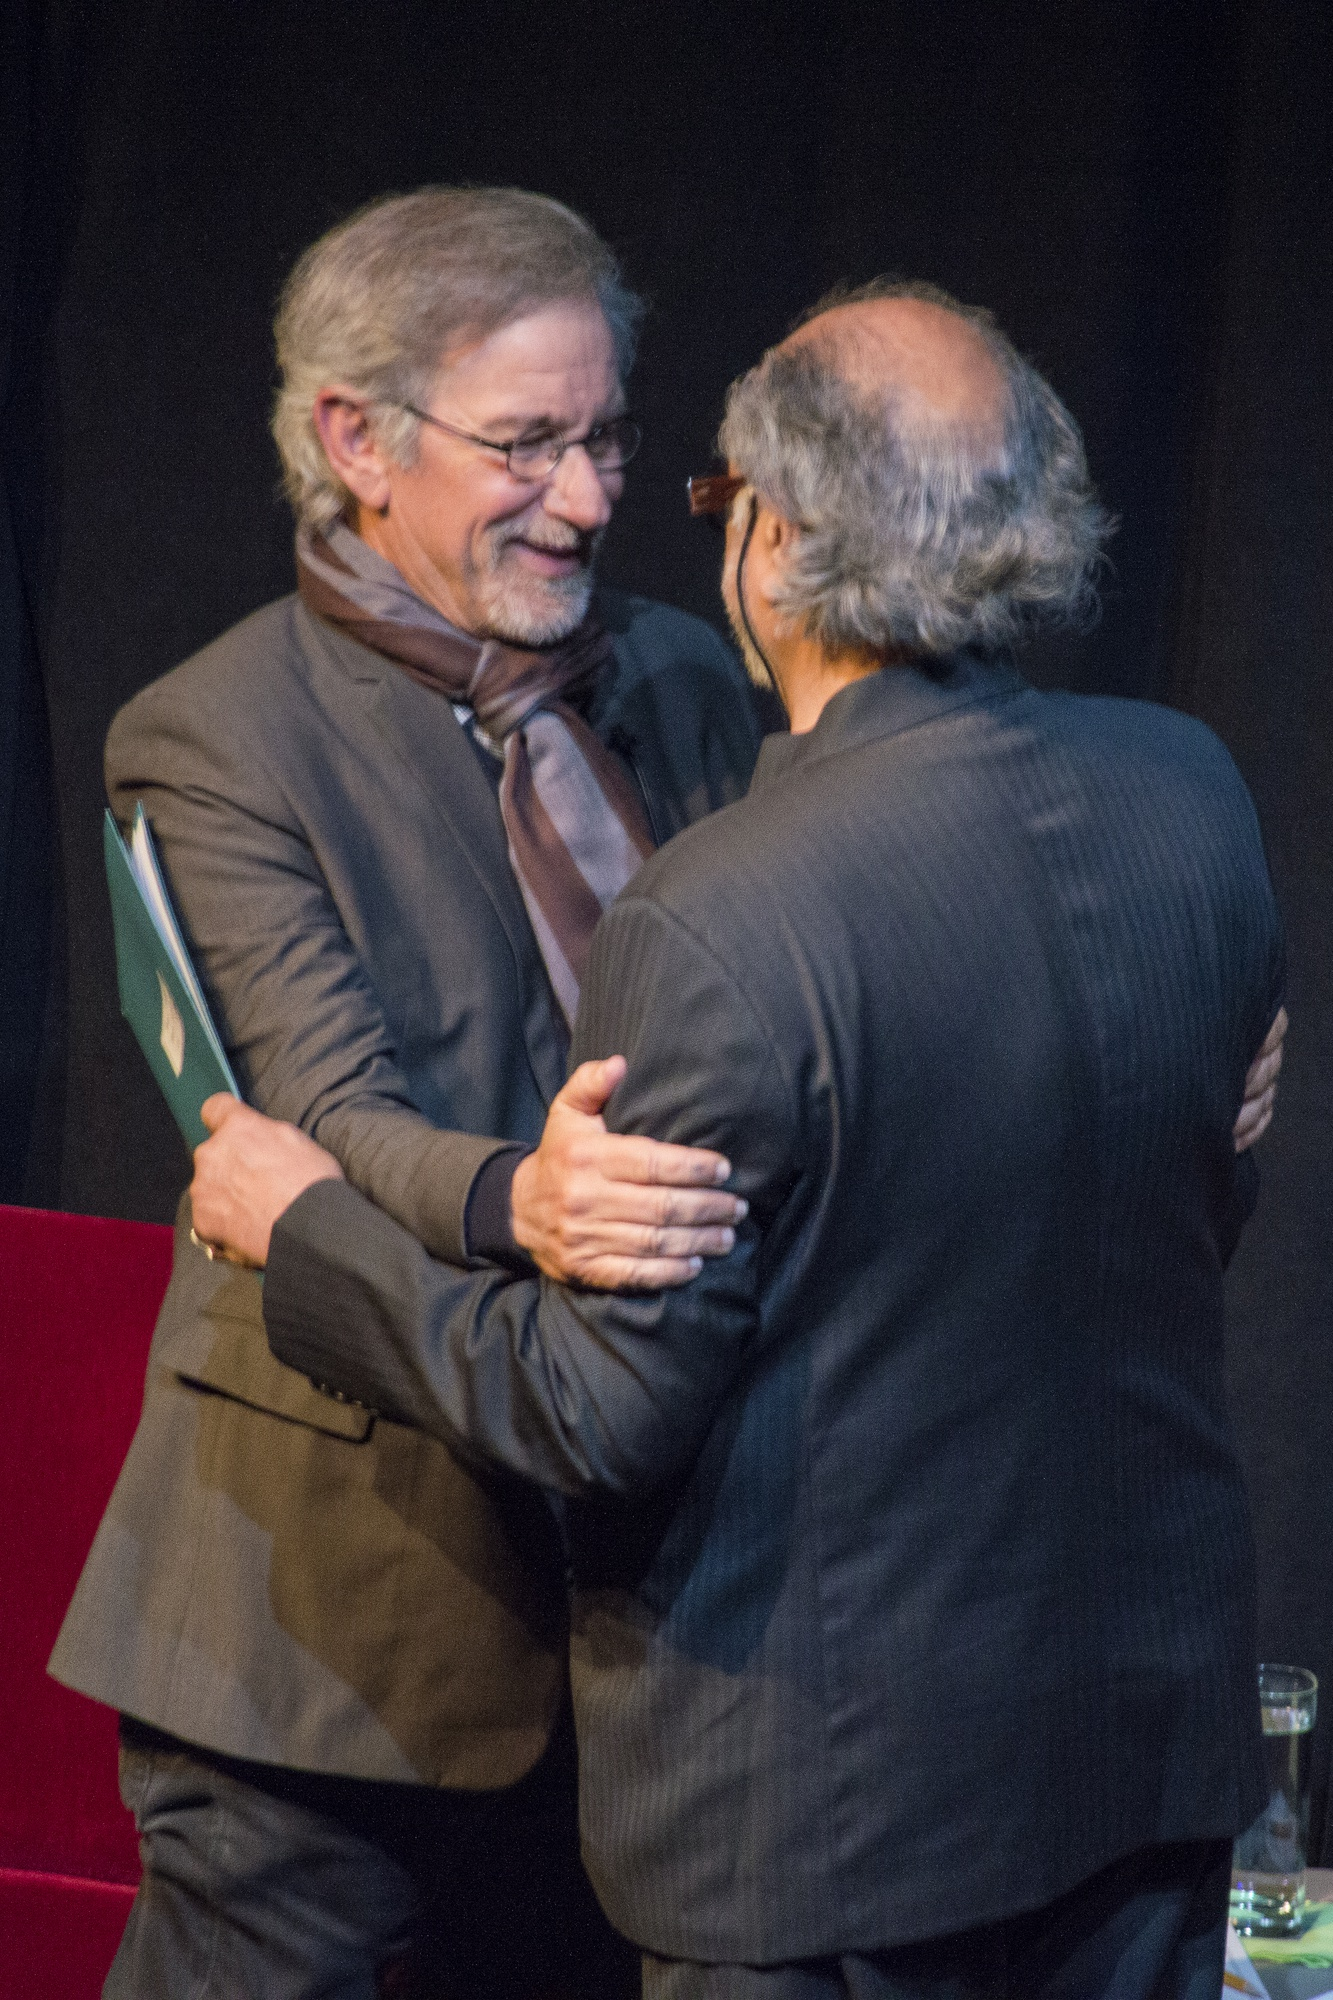 Academy Award-winning director Steven Spielberg joined Director of the Mahindra Humanities Center Homi K. Bhabha in a talk and question-and-answer session with members of the Harvard community Tuesday night.